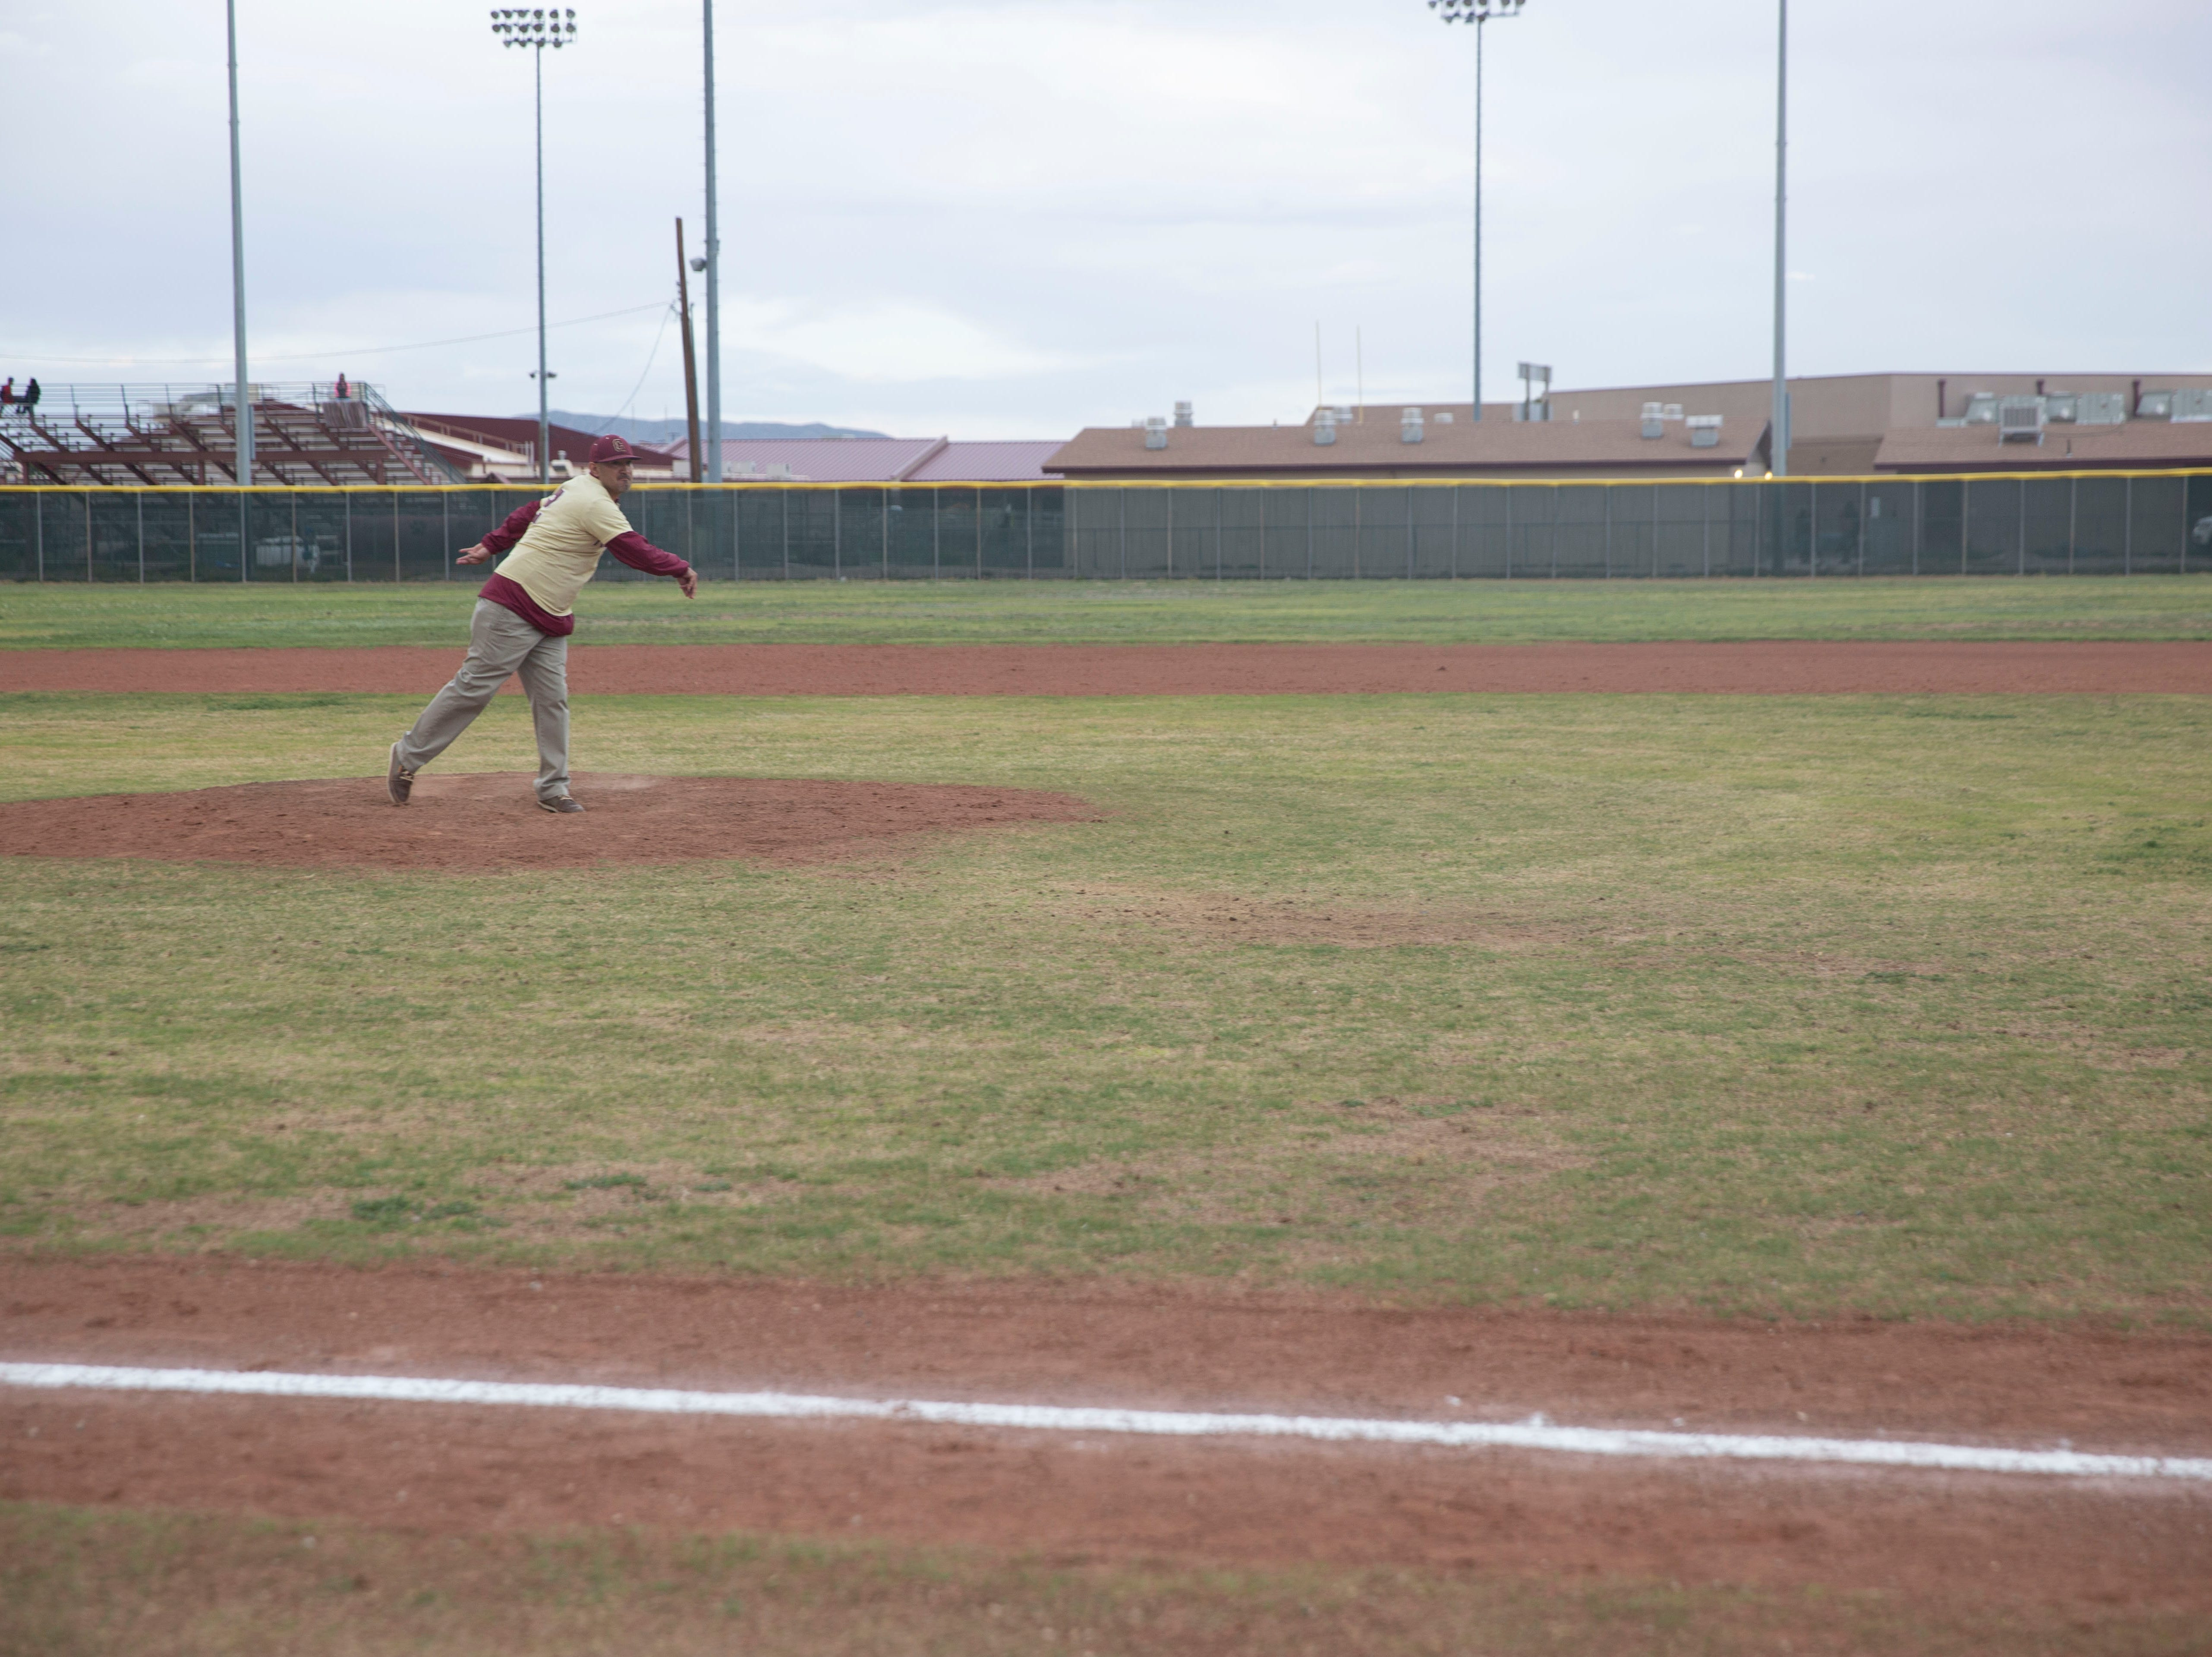 During a double-header baseball game Friday, Beto Romero Sr., threw the first pitch of the second game, in honor of his son Beto Romero Jr., who was killed in a car accident earlier this week.